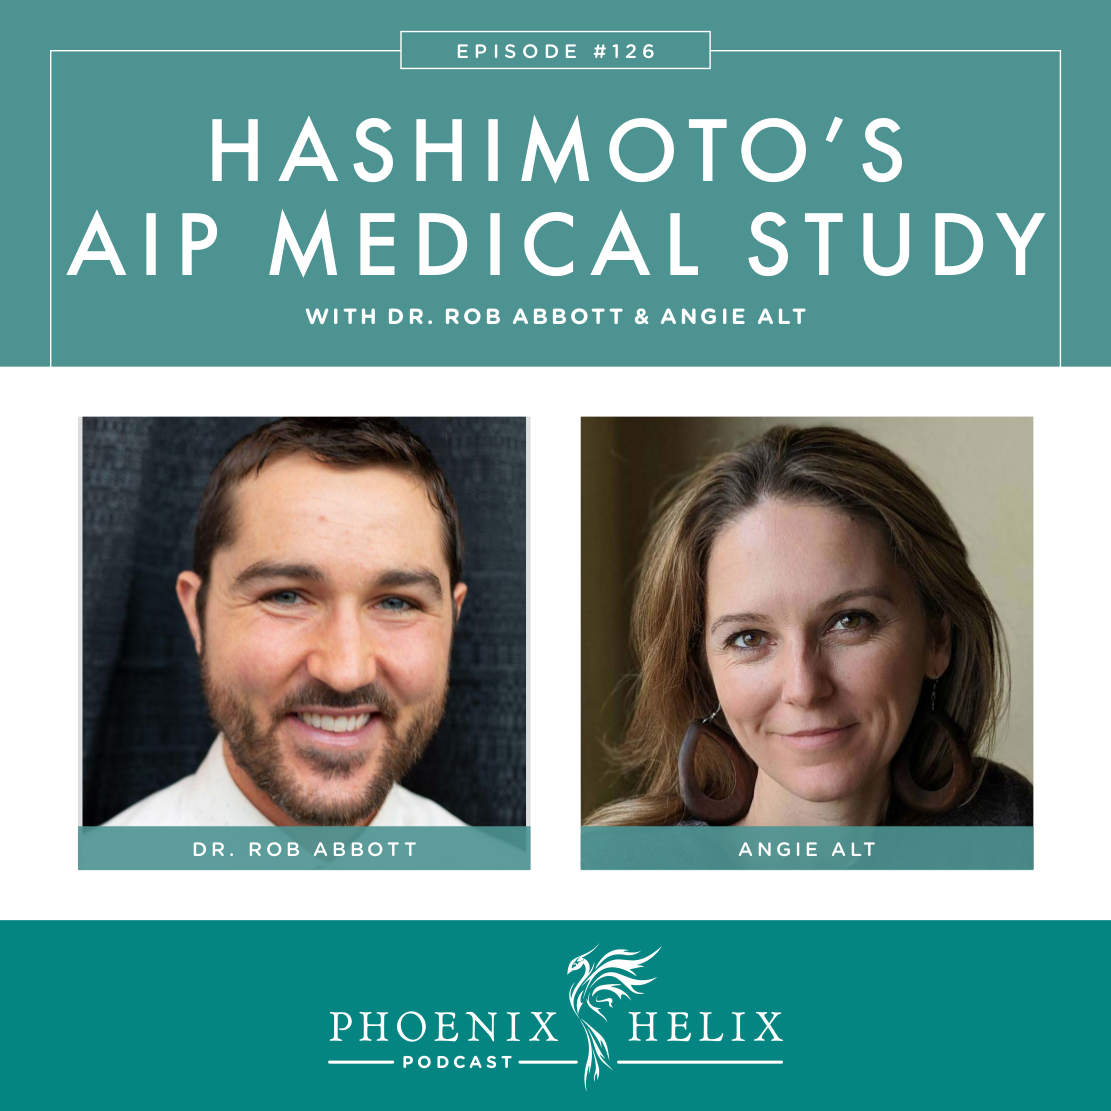 Hashimoto's AIP Medical Study | Phoenix Helix Podcast